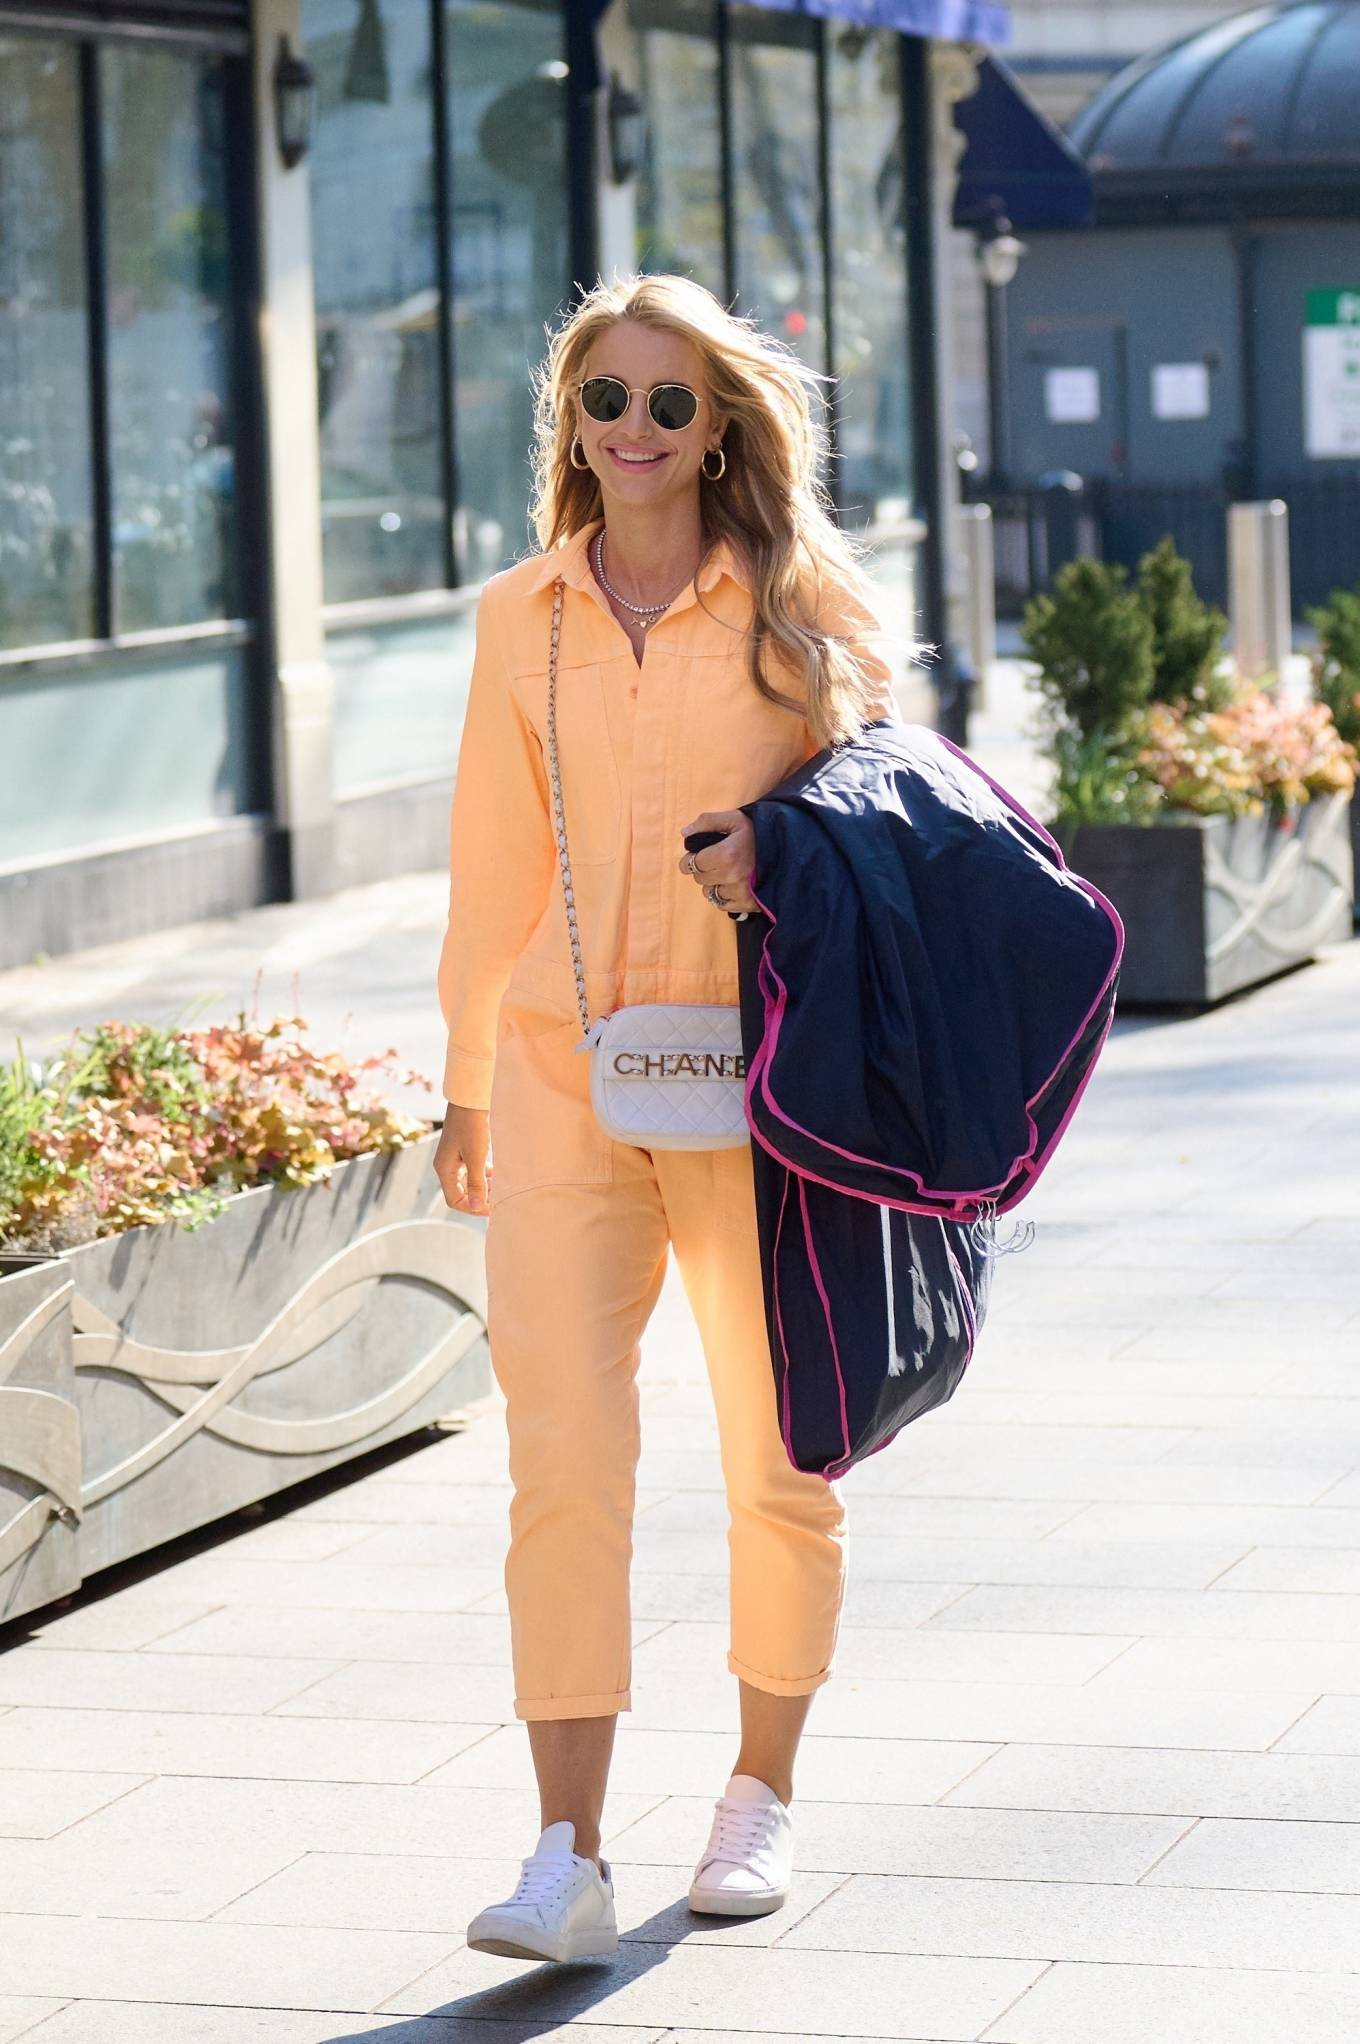 Vogue Williams 2021 : Vogue Williams – Pictured arriving at the Global studios in London-08